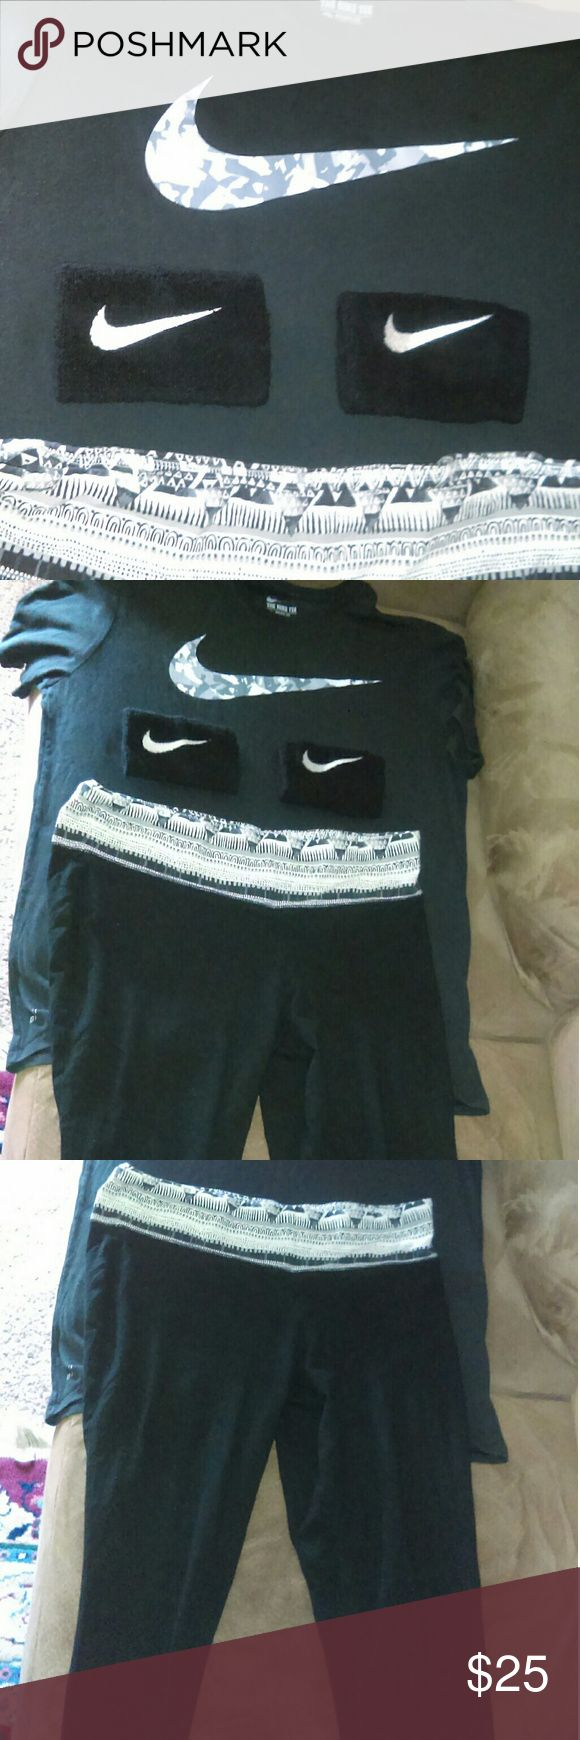 Workout outfit and sweat bands size large Size Large Other